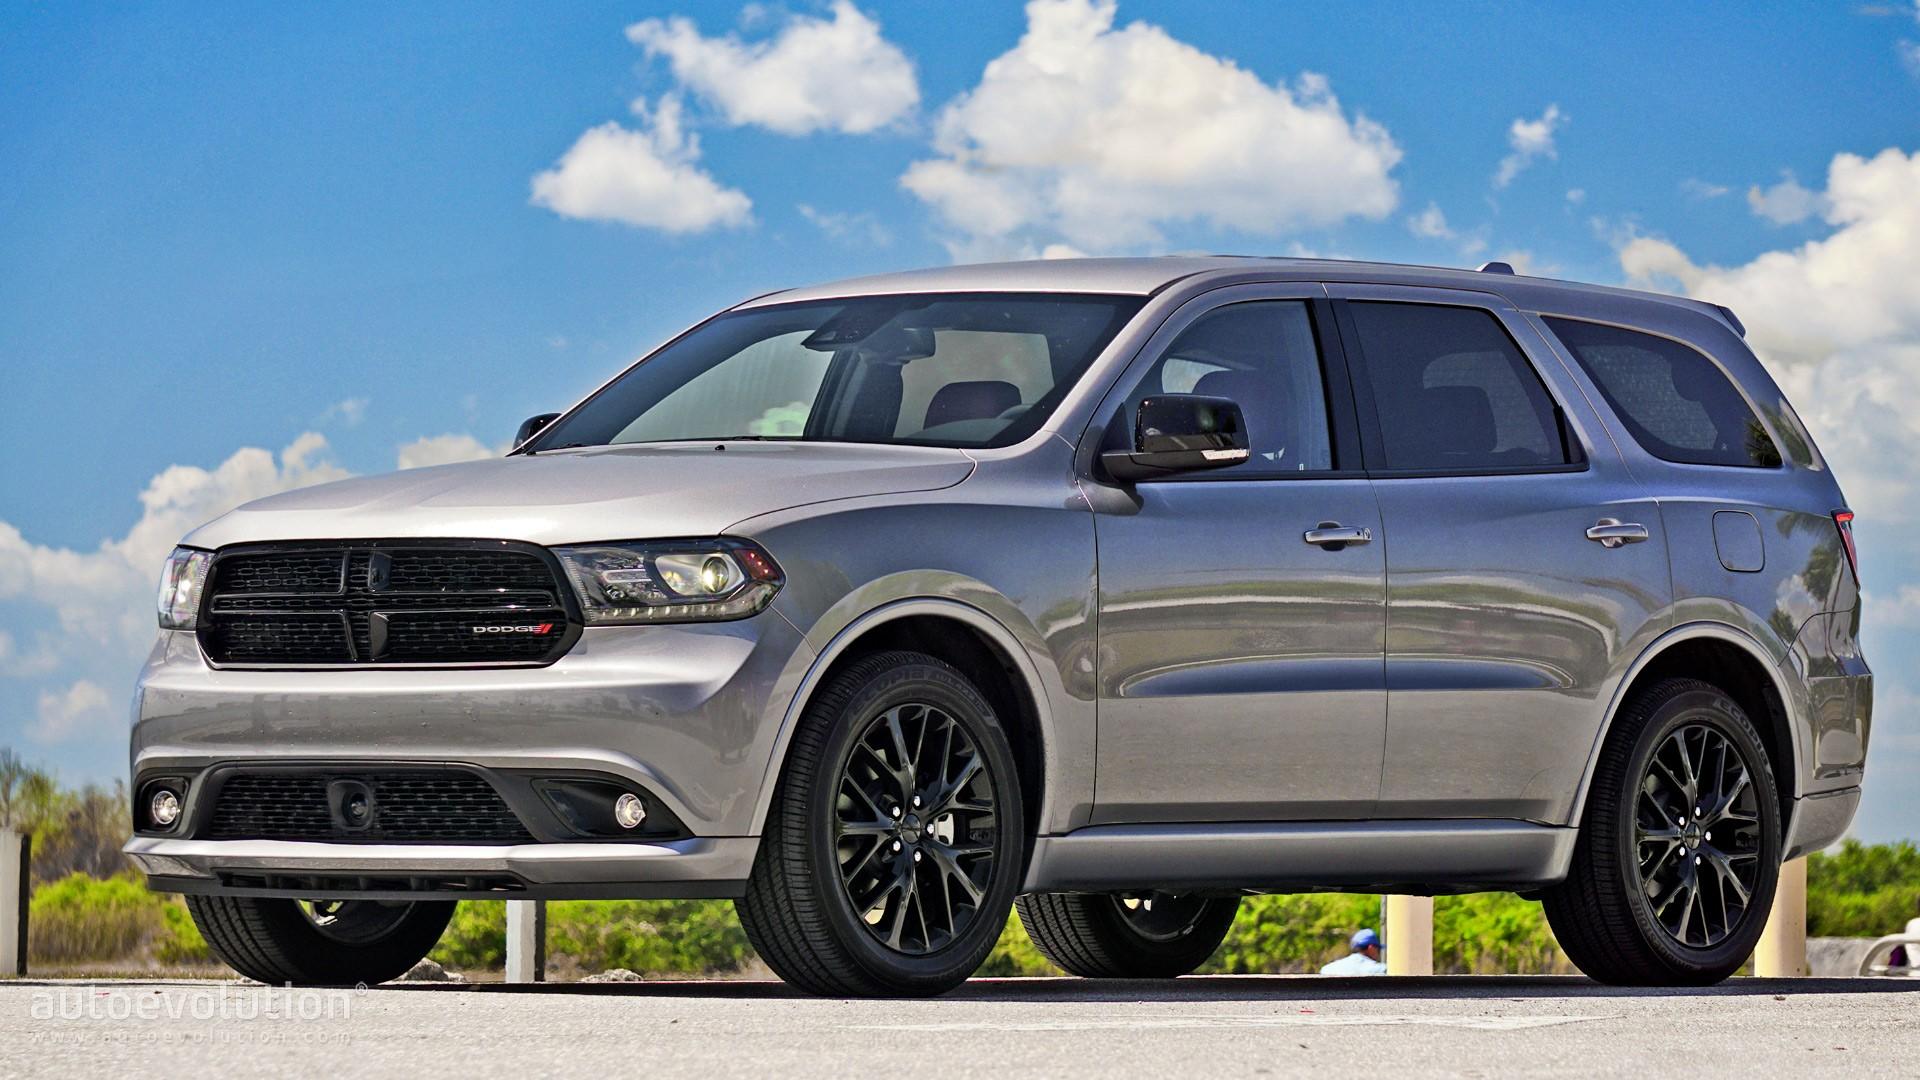 2017 dodge durango srt8 2018 dodge reviews. Black Bedroom Furniture Sets. Home Design Ideas